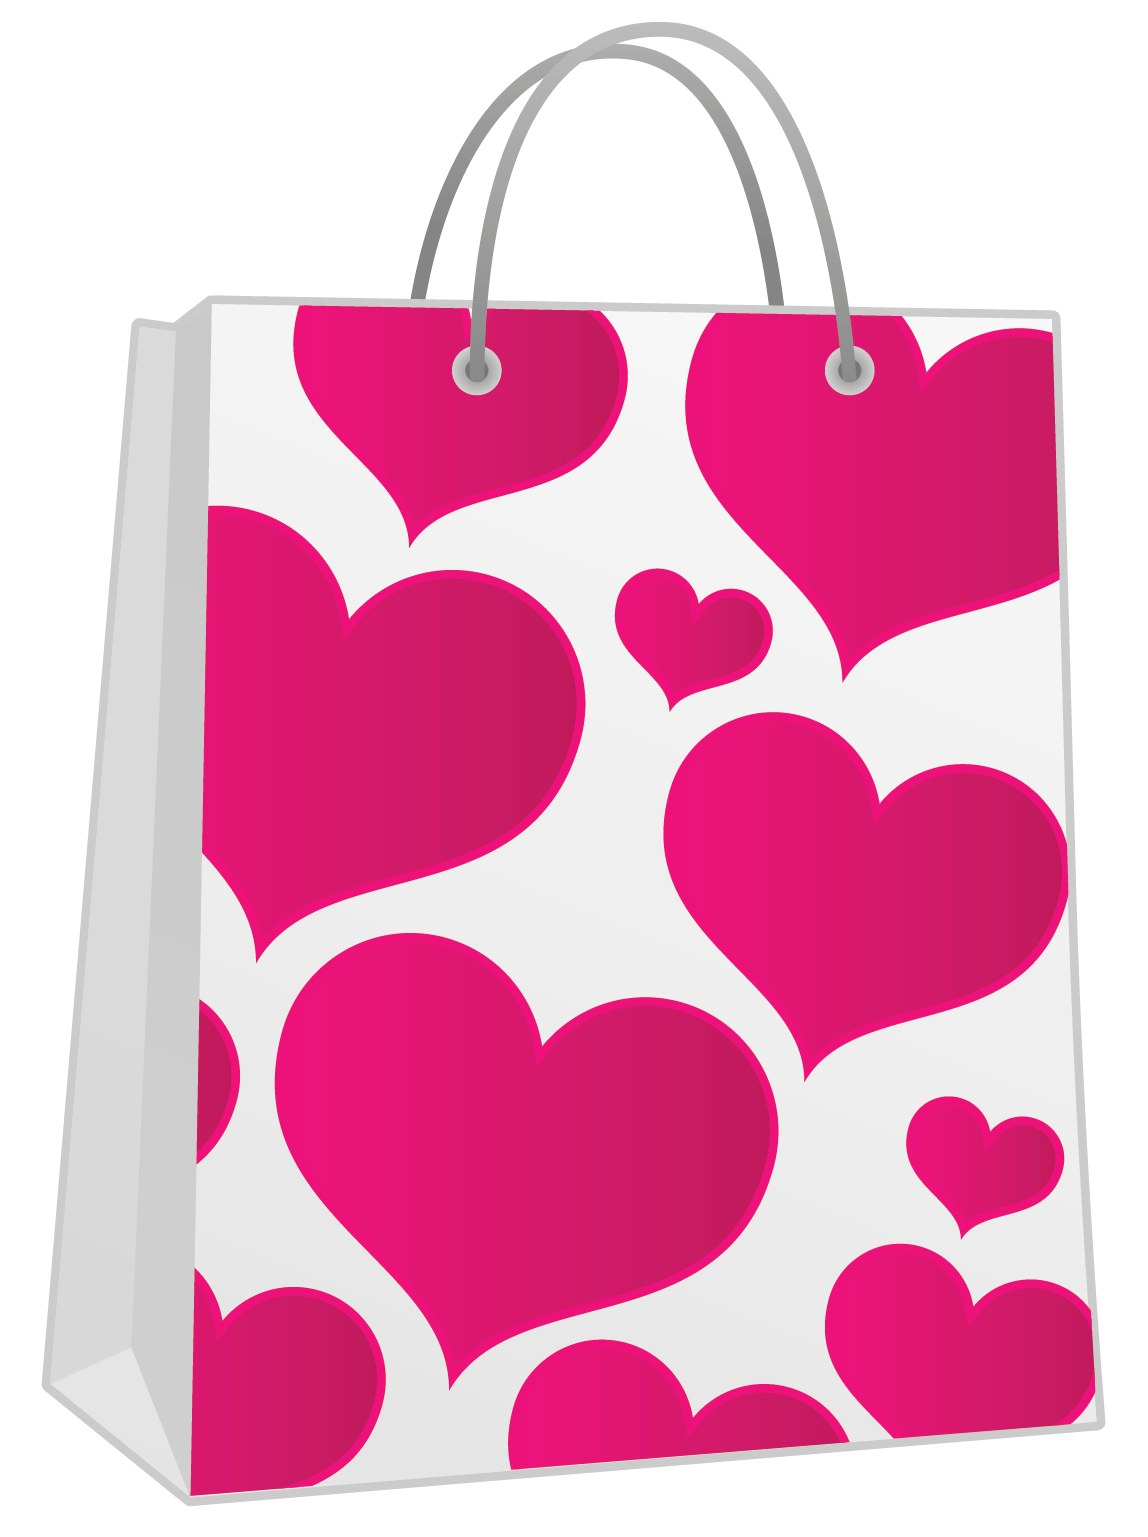 Valentine pink with hearts. Gift clipart gift bag